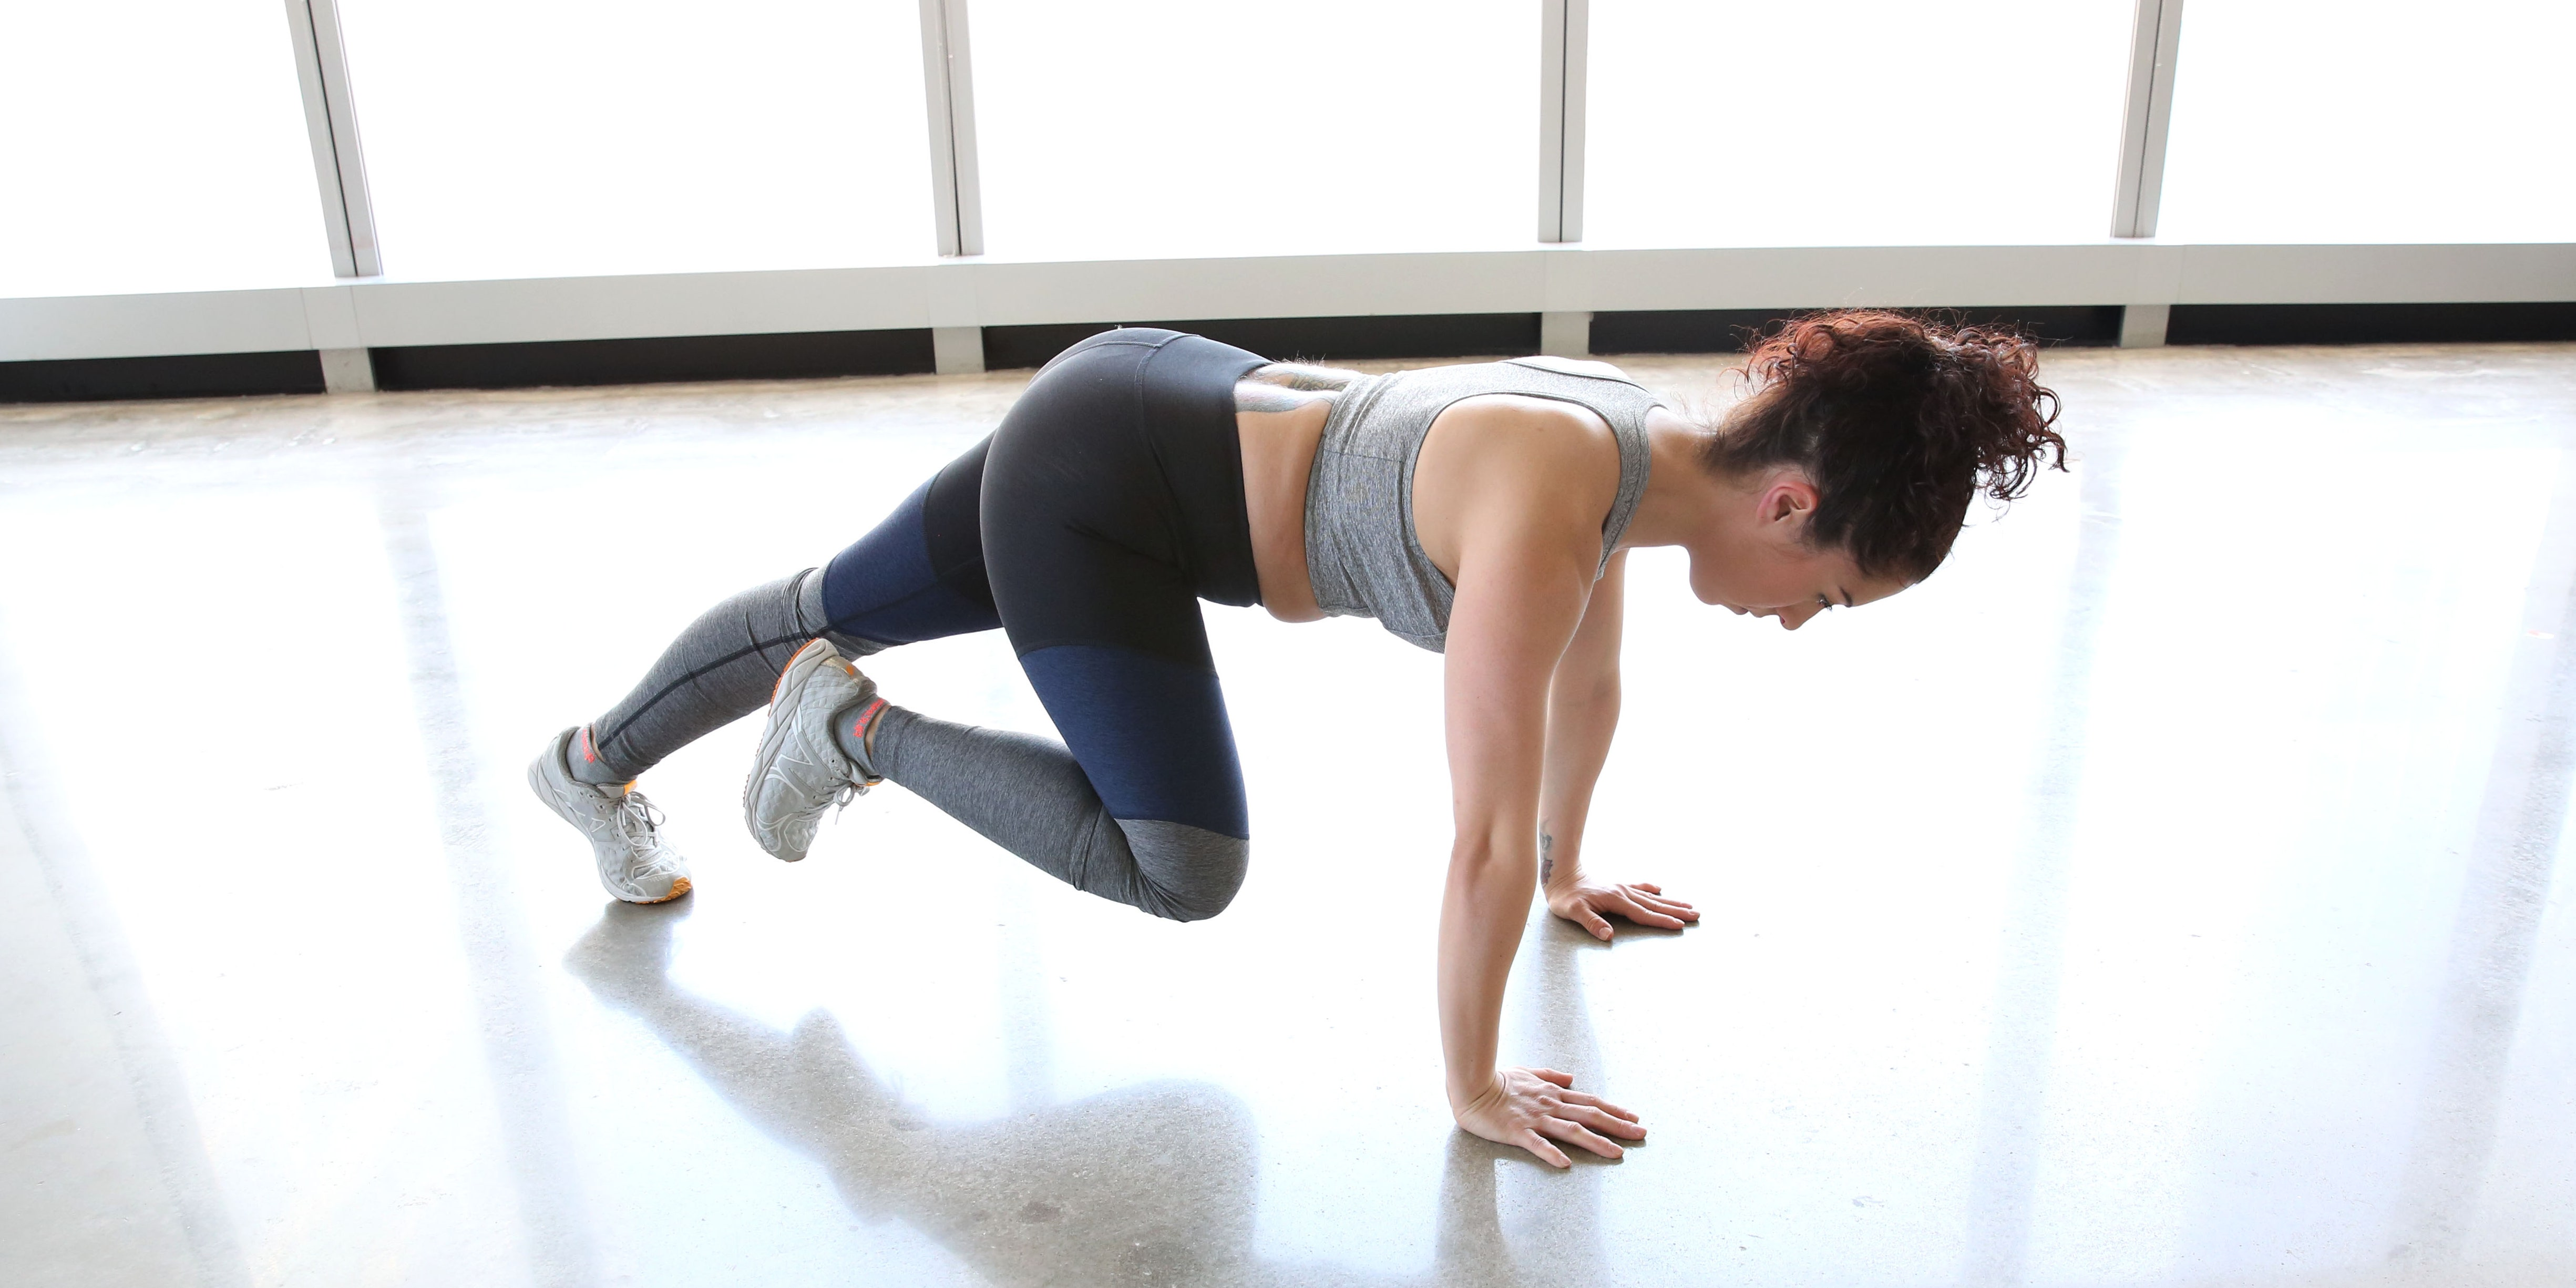 bouncing plates at home workouts